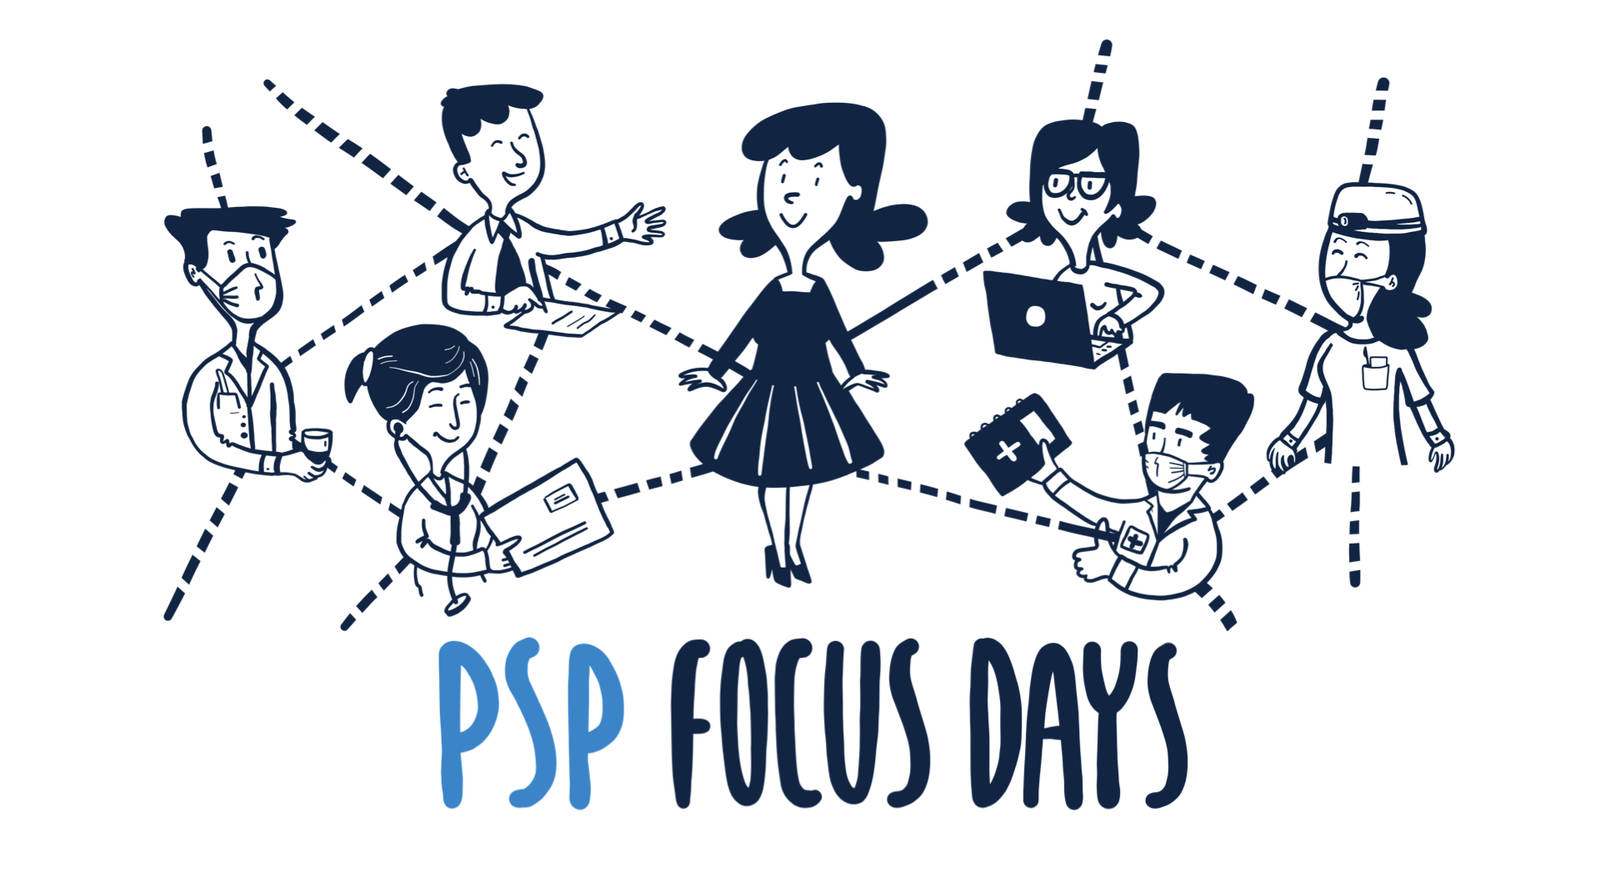 PSP Focus Days